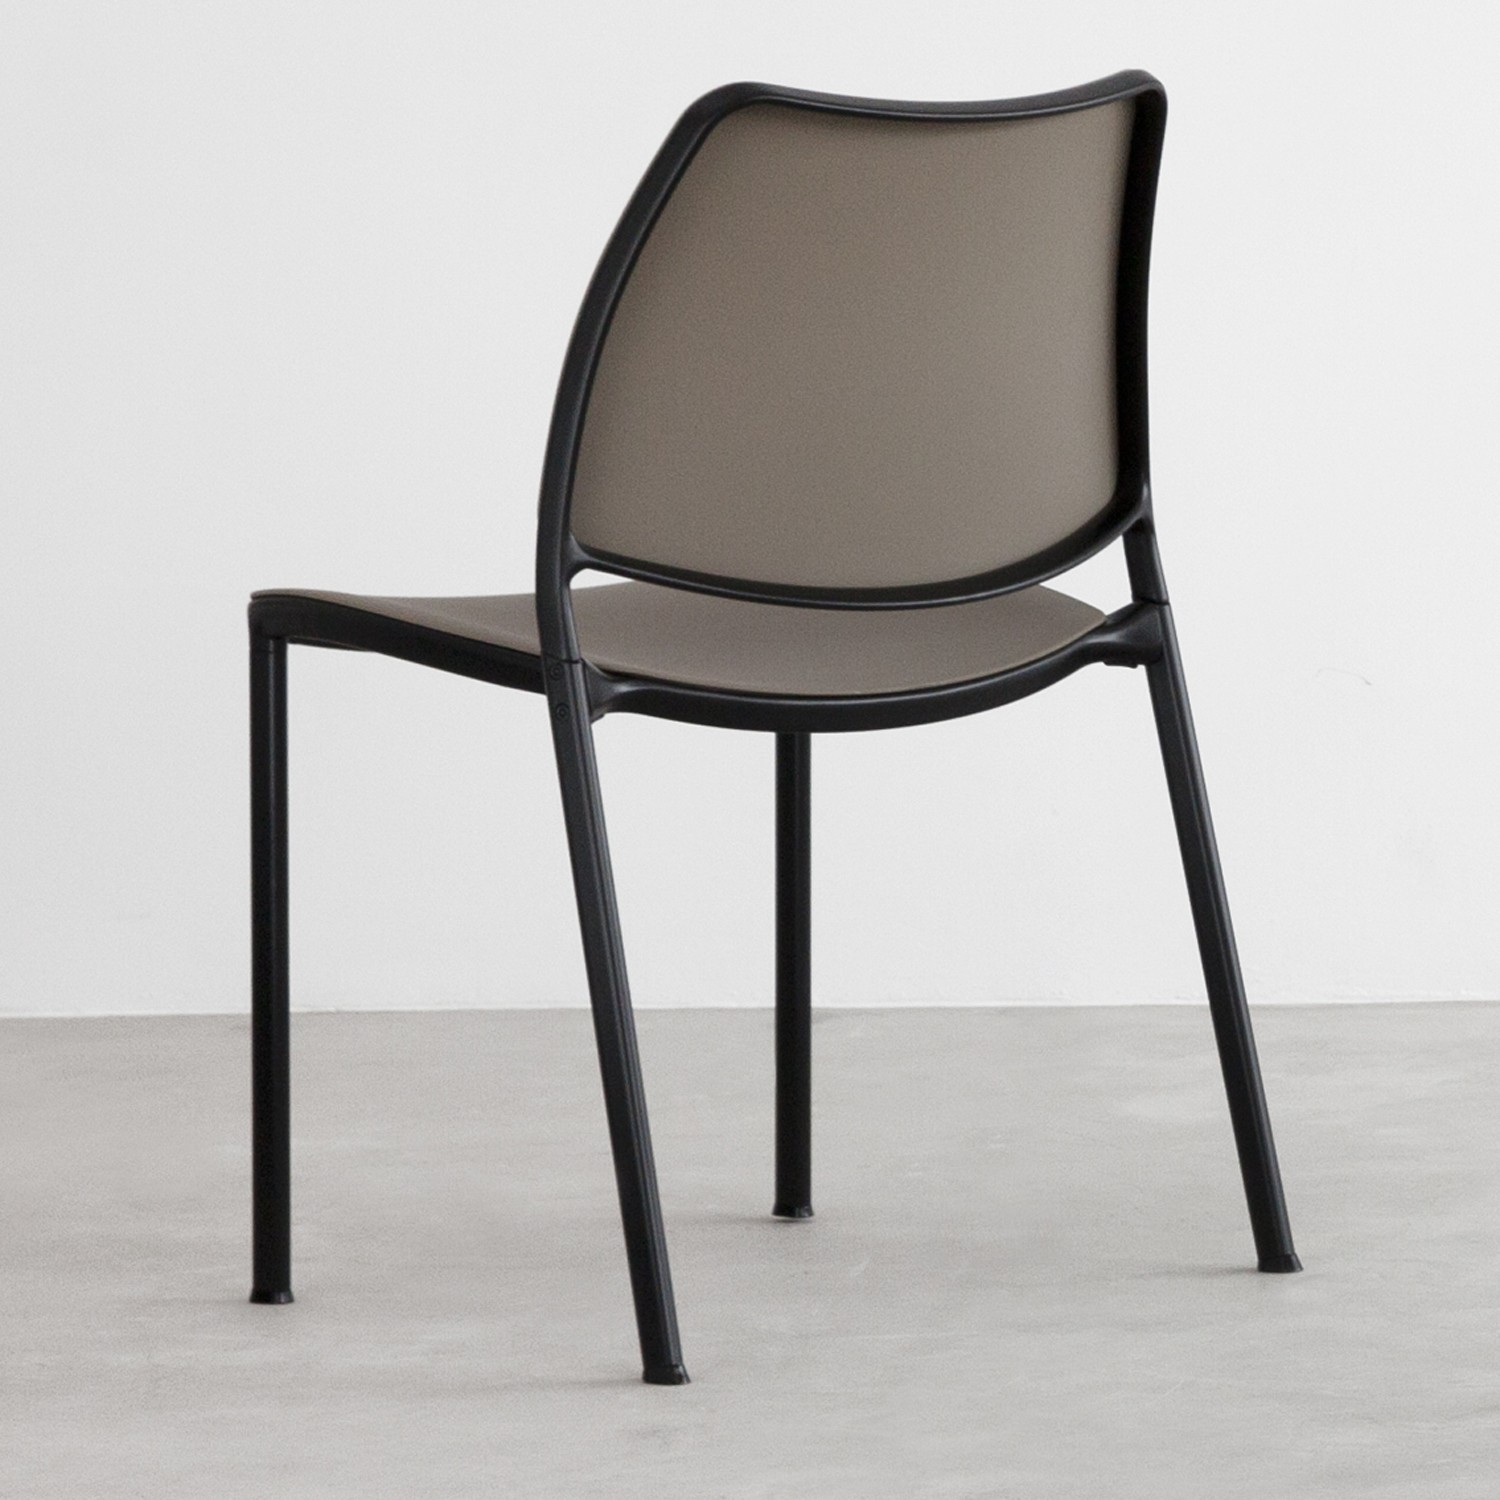 Gas Chair Designer Chair By Stua Available In South Africa